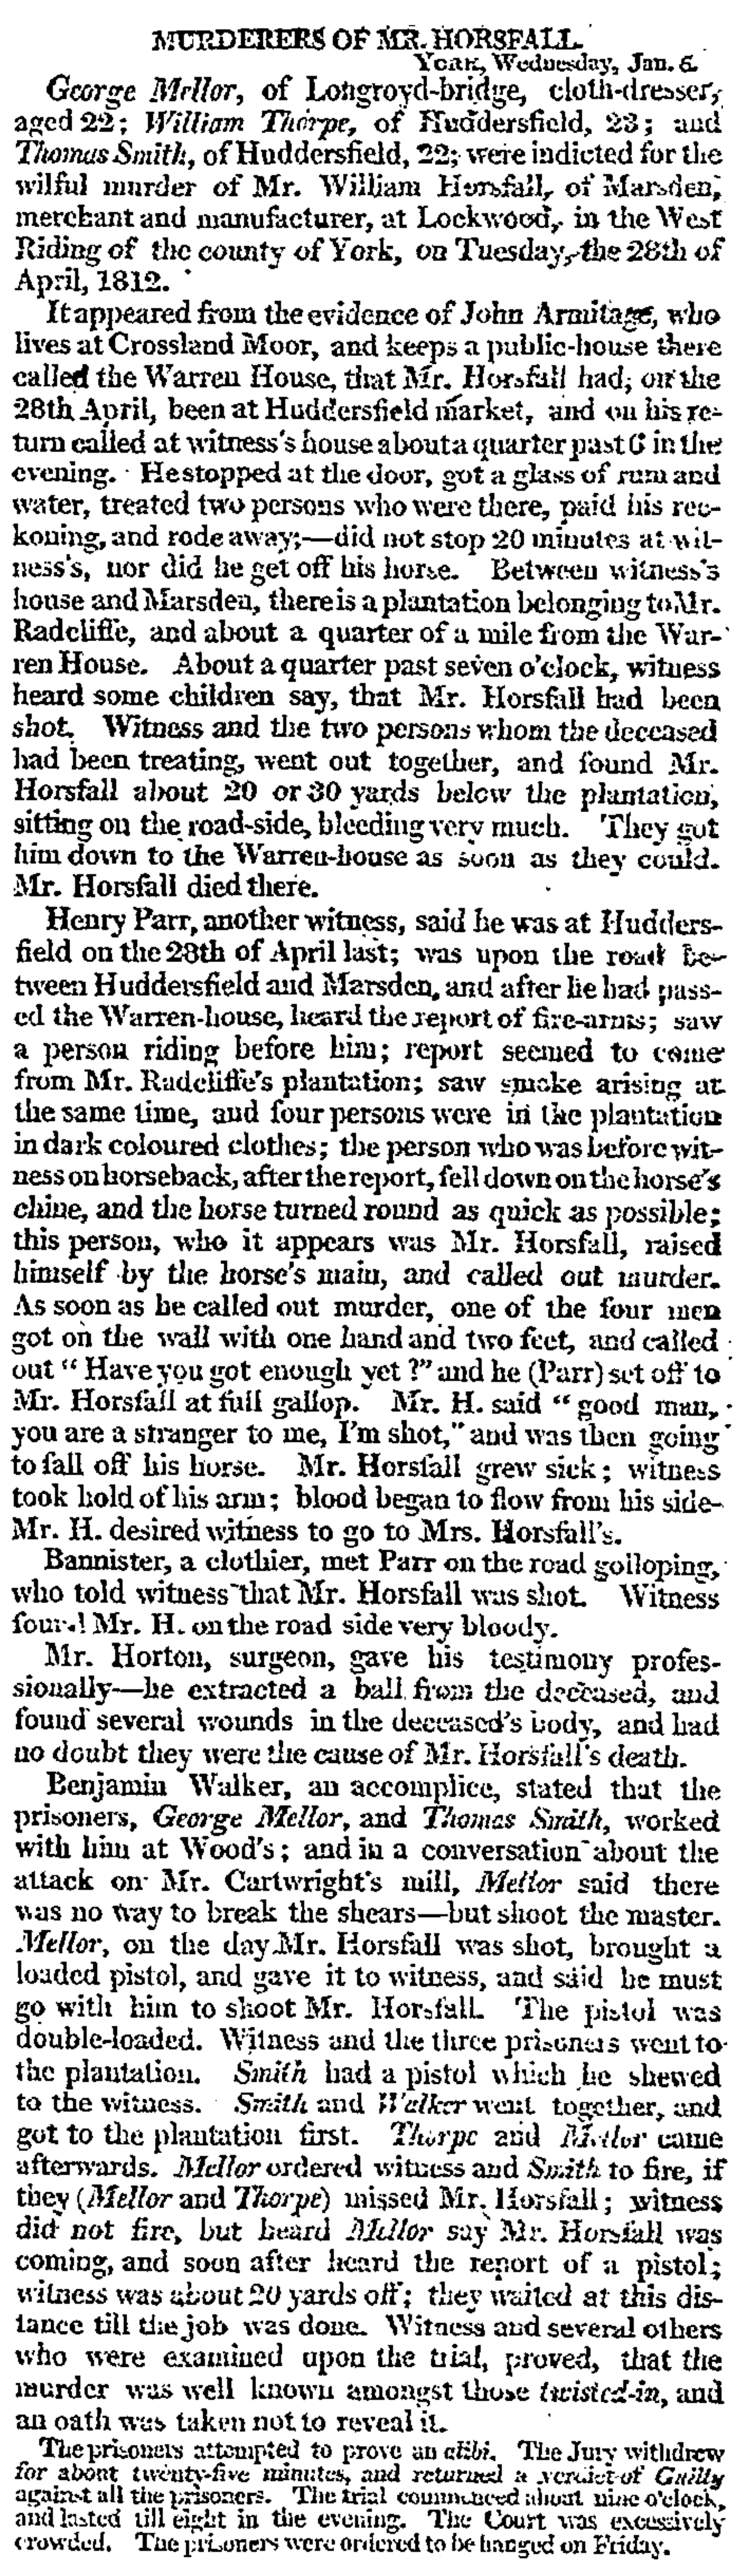 The Times (09.Jan.1813) - Murderers of Mr. Horsfall